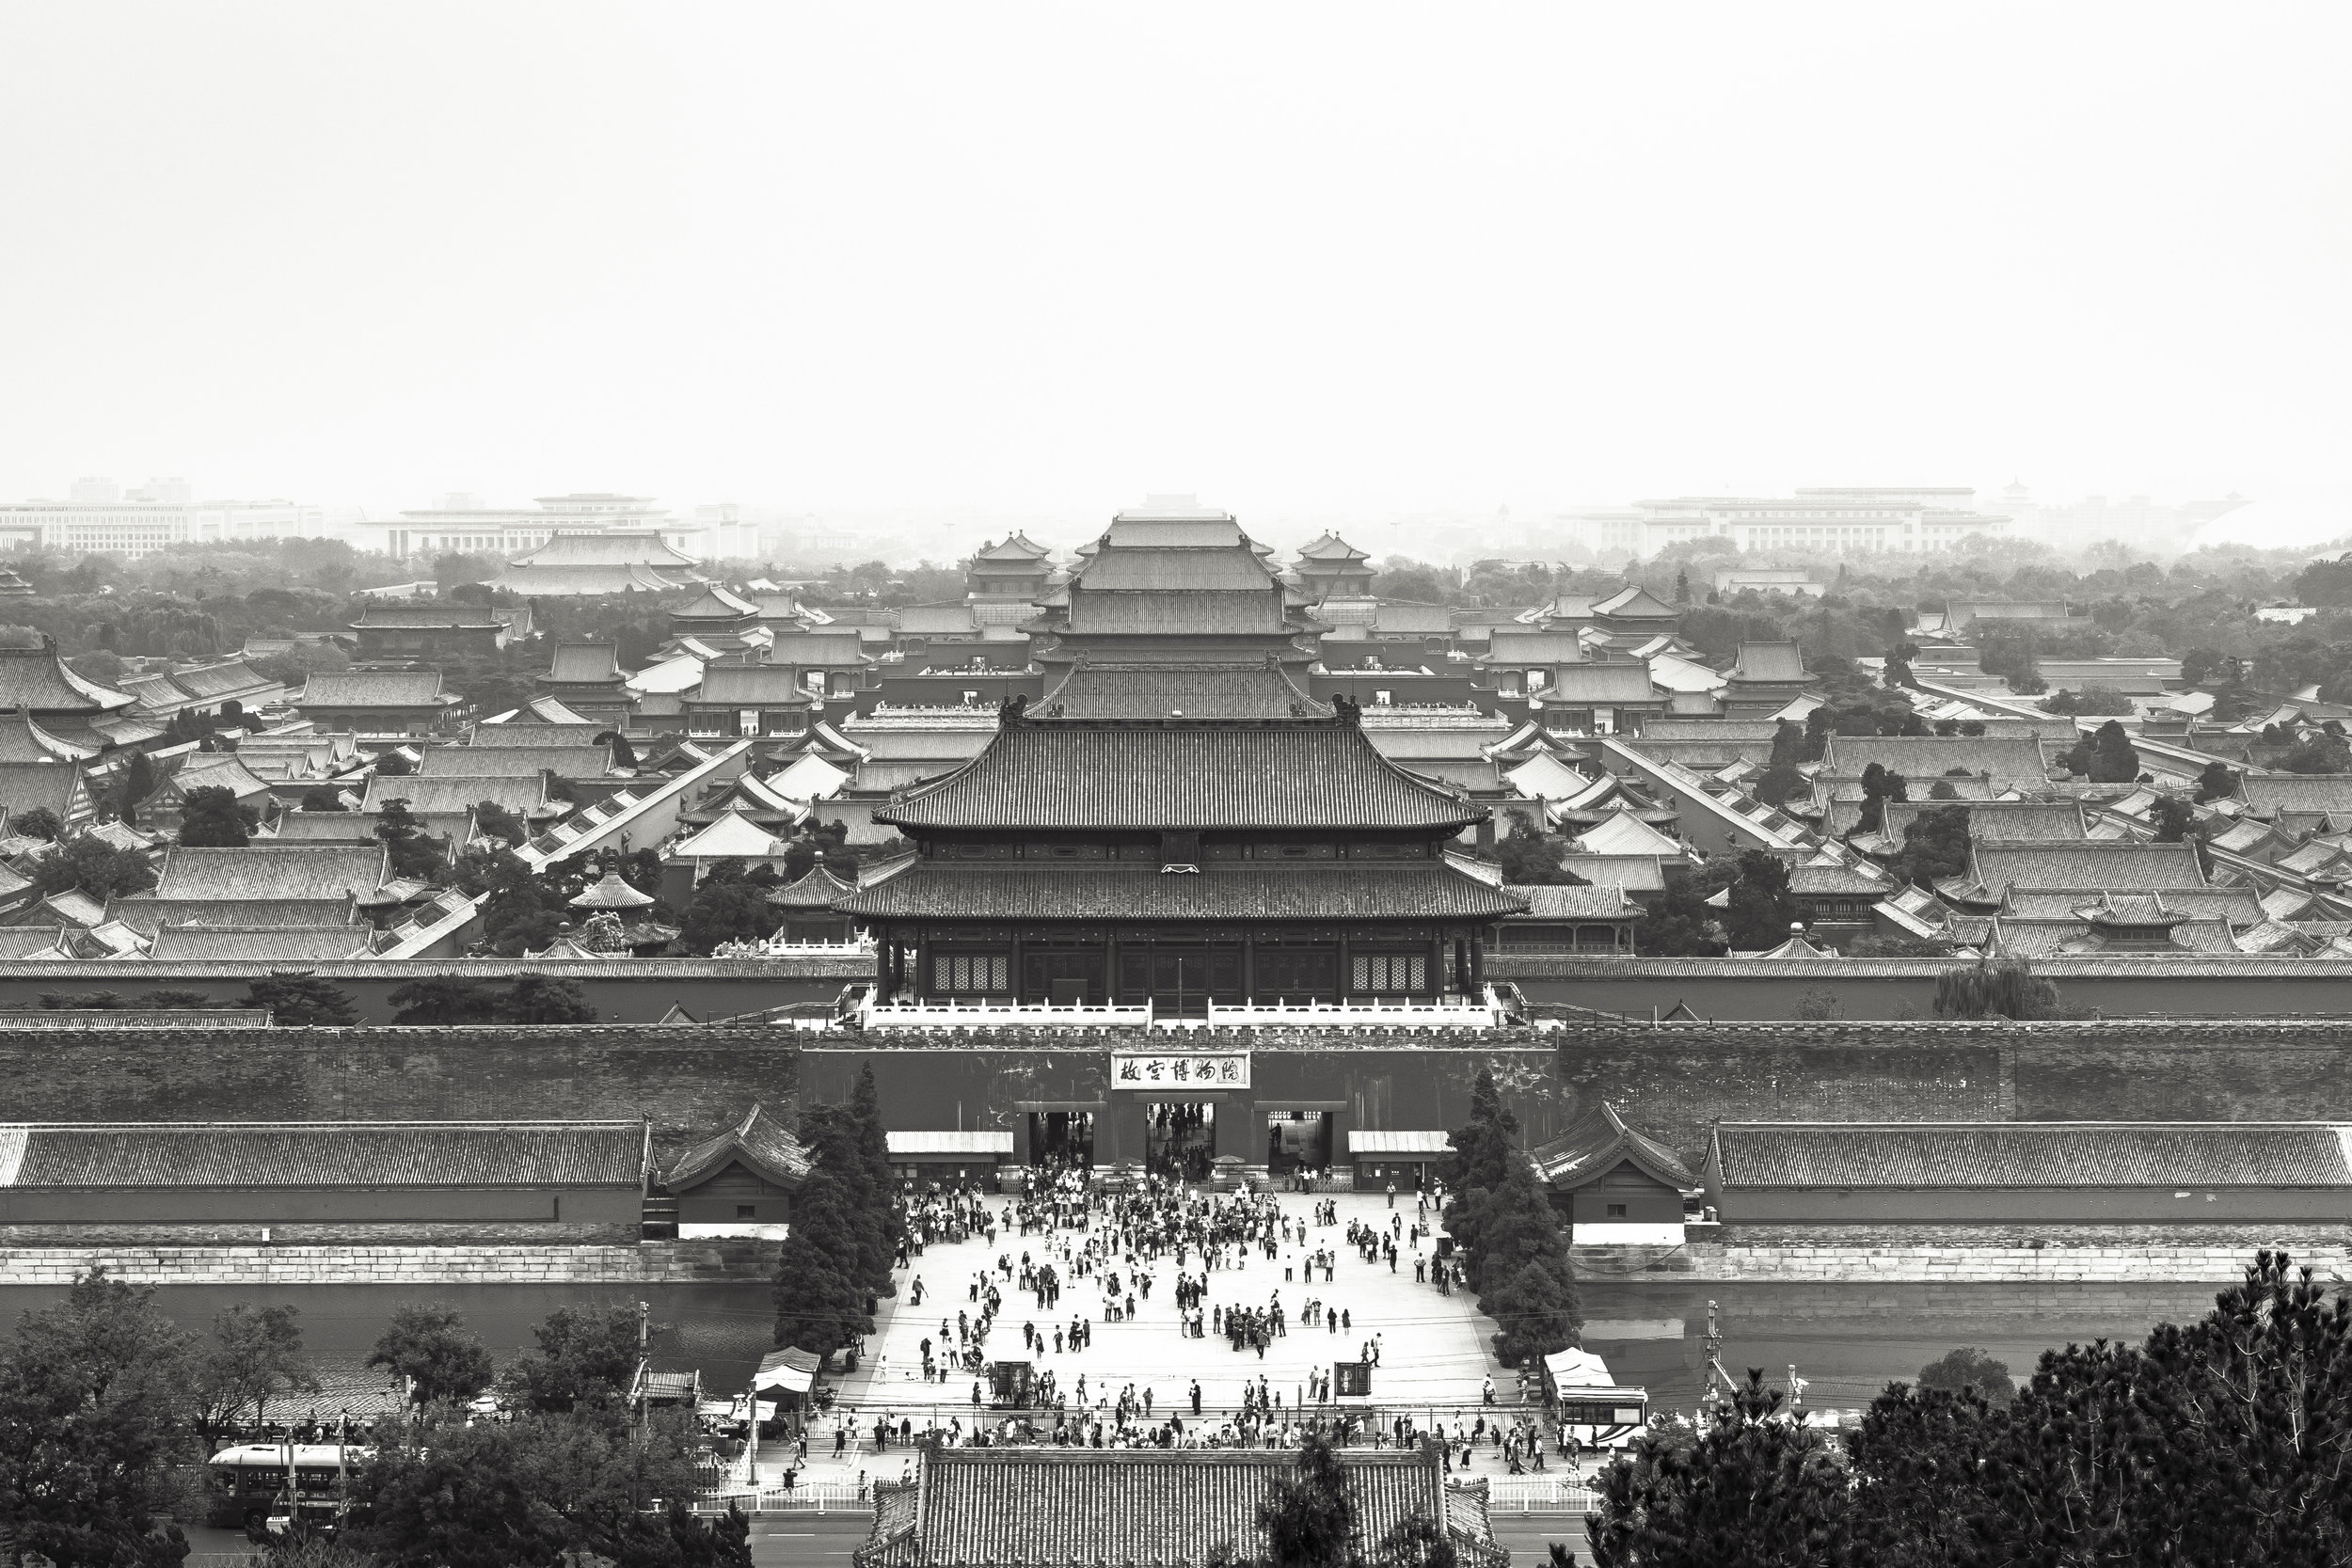 We were humbled by the gates of the Forbidden city